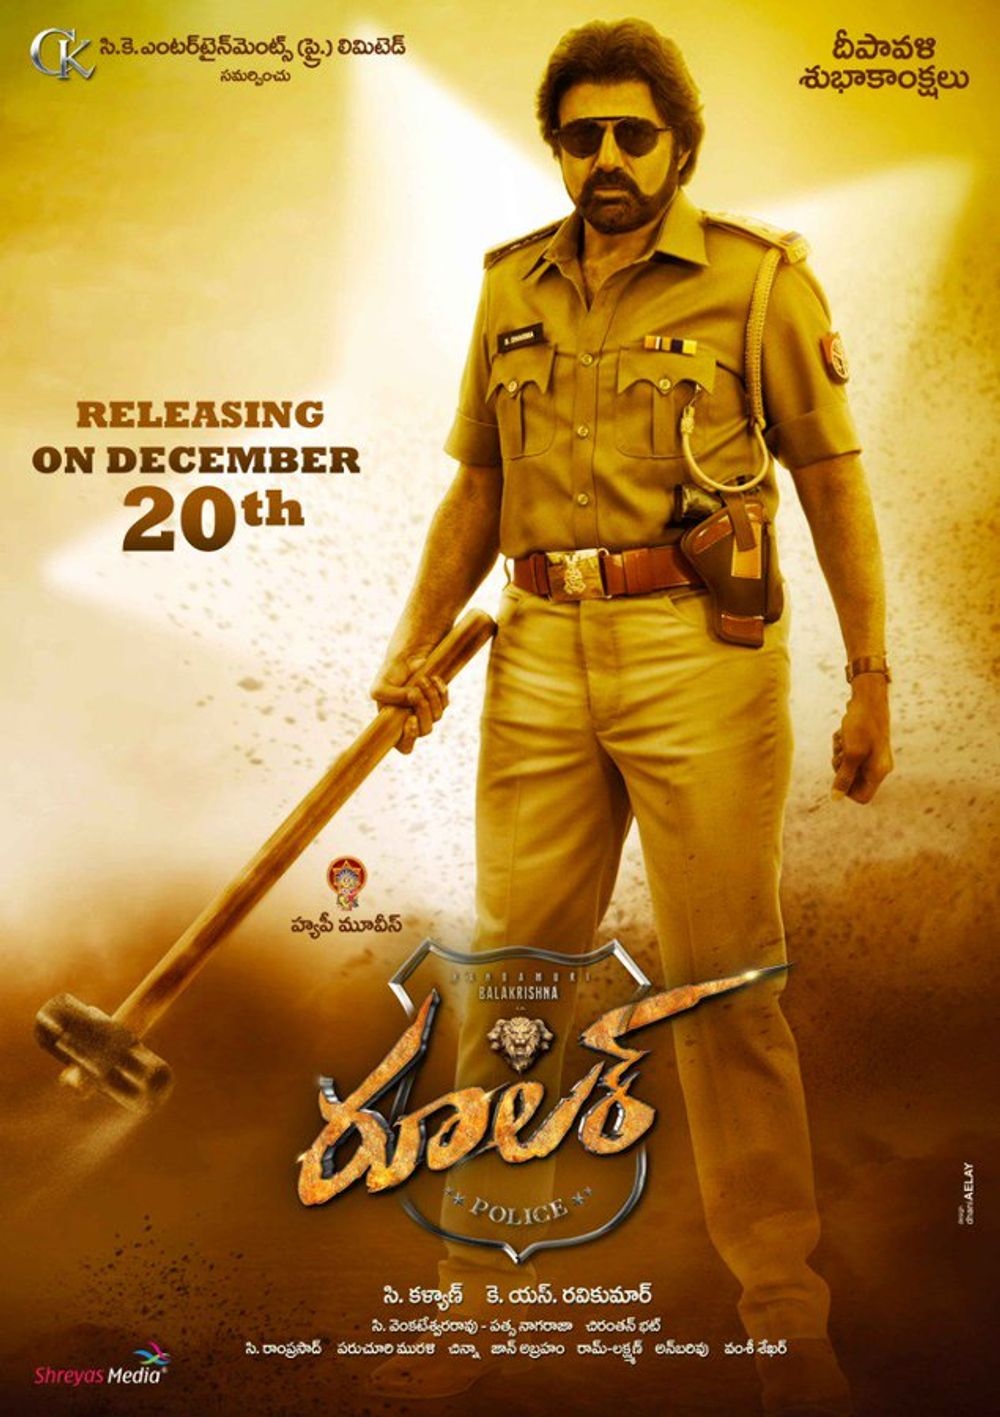 Ruler 2019 Urdu Subtitles 720p HDRip [in Telugu] Free Download